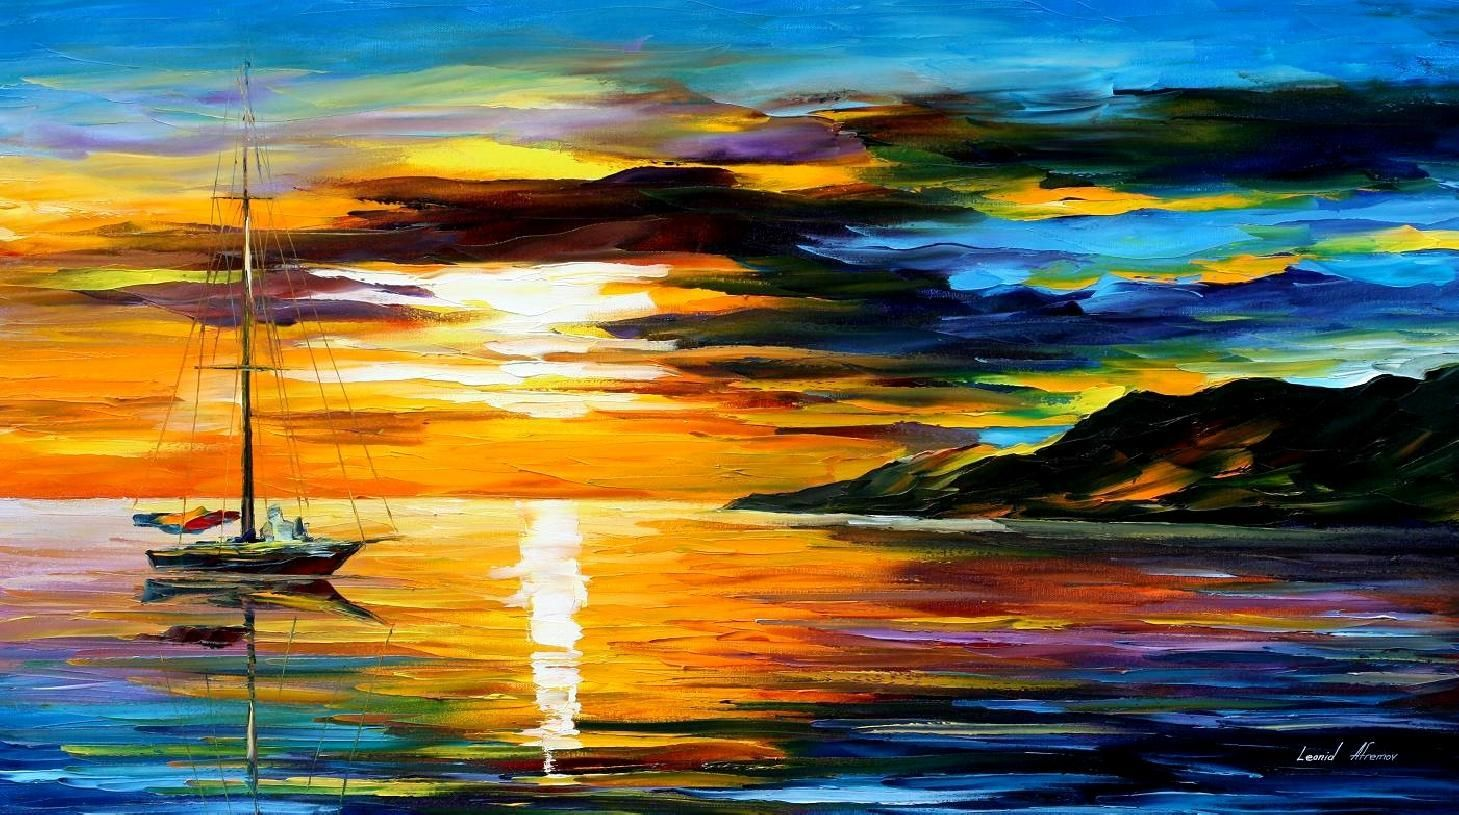 SAILING WITH THE SUN 2 Palette Knife Oil Painting On Canvas By Leonid Afremov